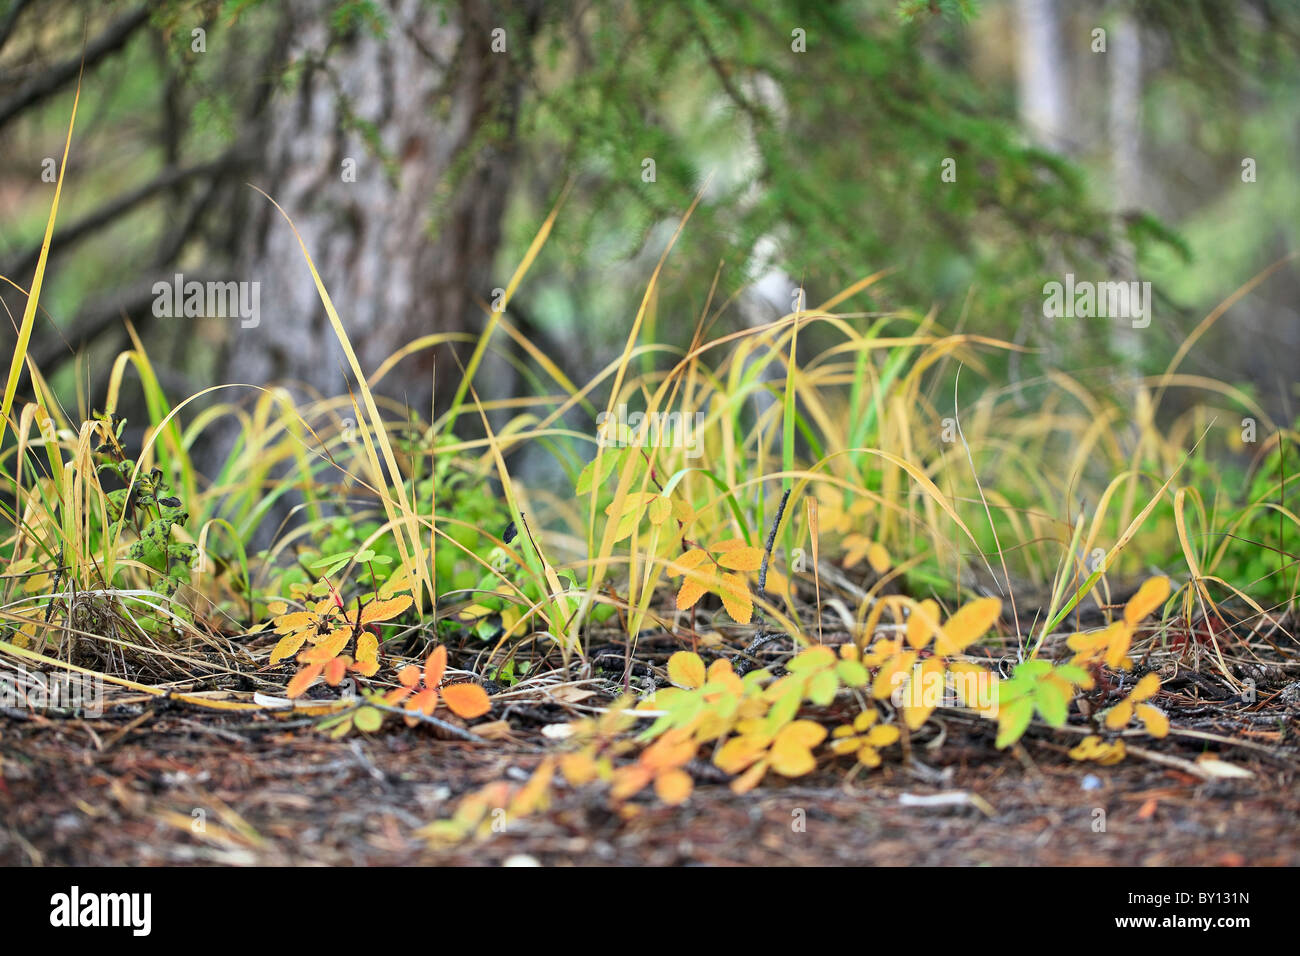 Grasses and foliage growing on forest floor.  Yoho National Park, British Columbia, Canada. - Stock Image